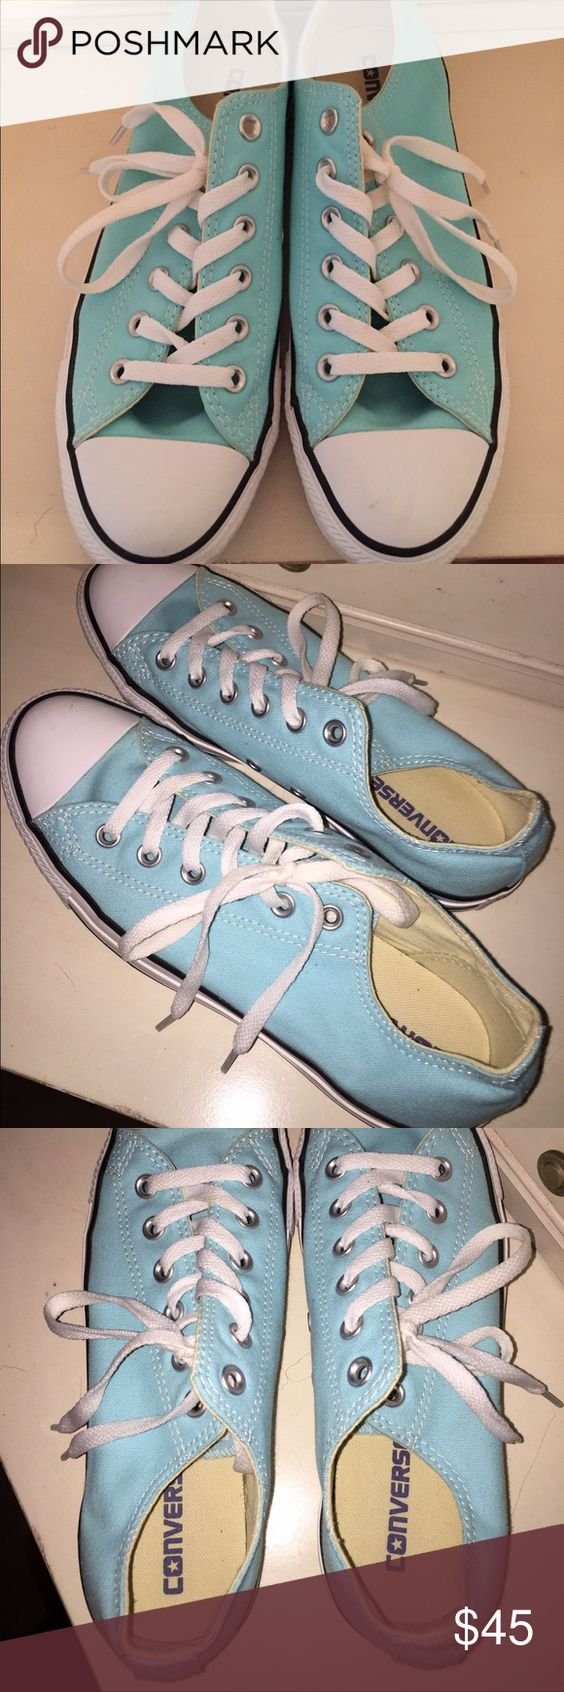 Baby Blue Converse Tiffany Blue Low Top Converse. Size 9. NEVER BEEN WORN. NO SCUFF MARKS OR DIRT. ALL PARTS OF THE SHOE ARE PERFECTLY INTACT. HAVE NOT LEFT THE BOX. Converse Shoes Sneakers